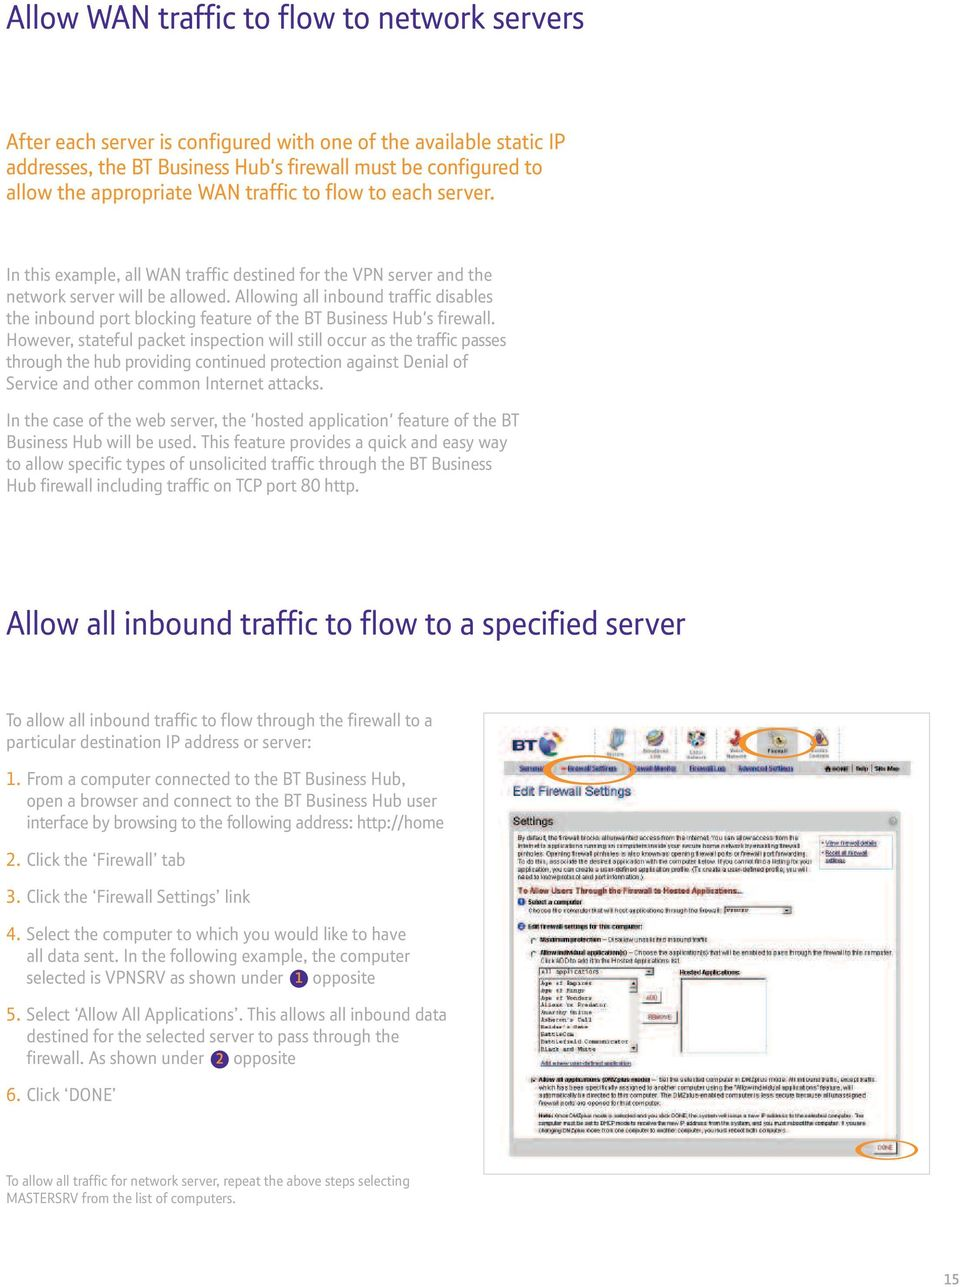 Allowing all inbound traffic disables the inbound port blocking feature of the BT Business Hub's firewall.